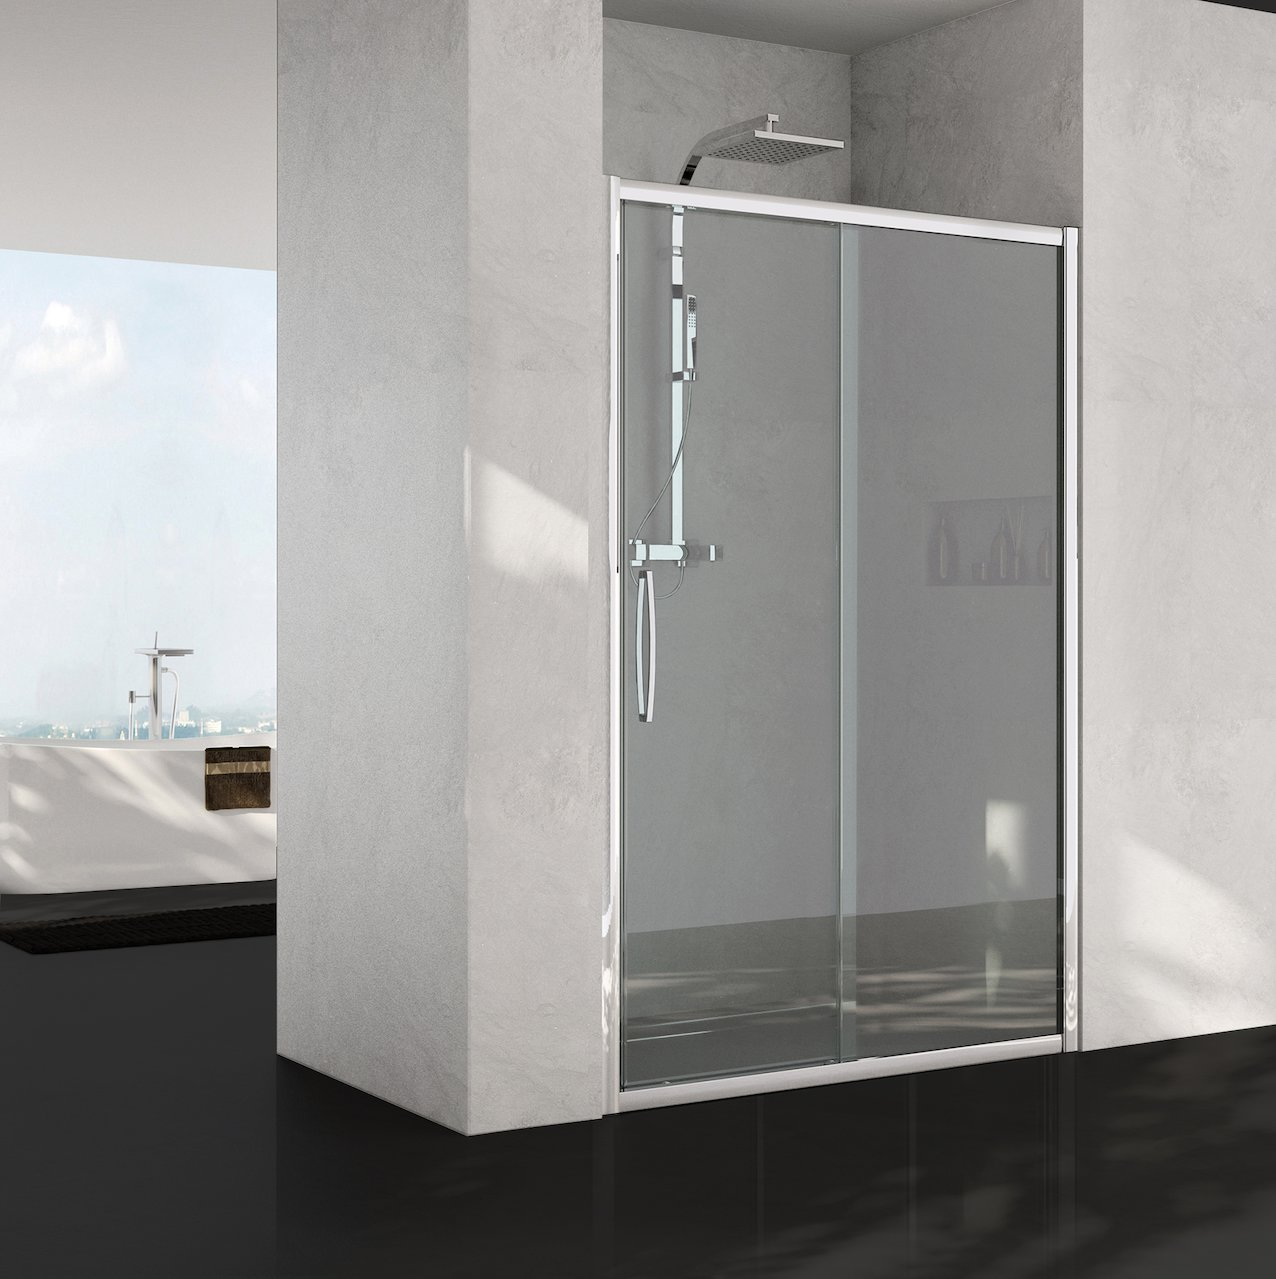 Sliding Shower Enclosure Tugela